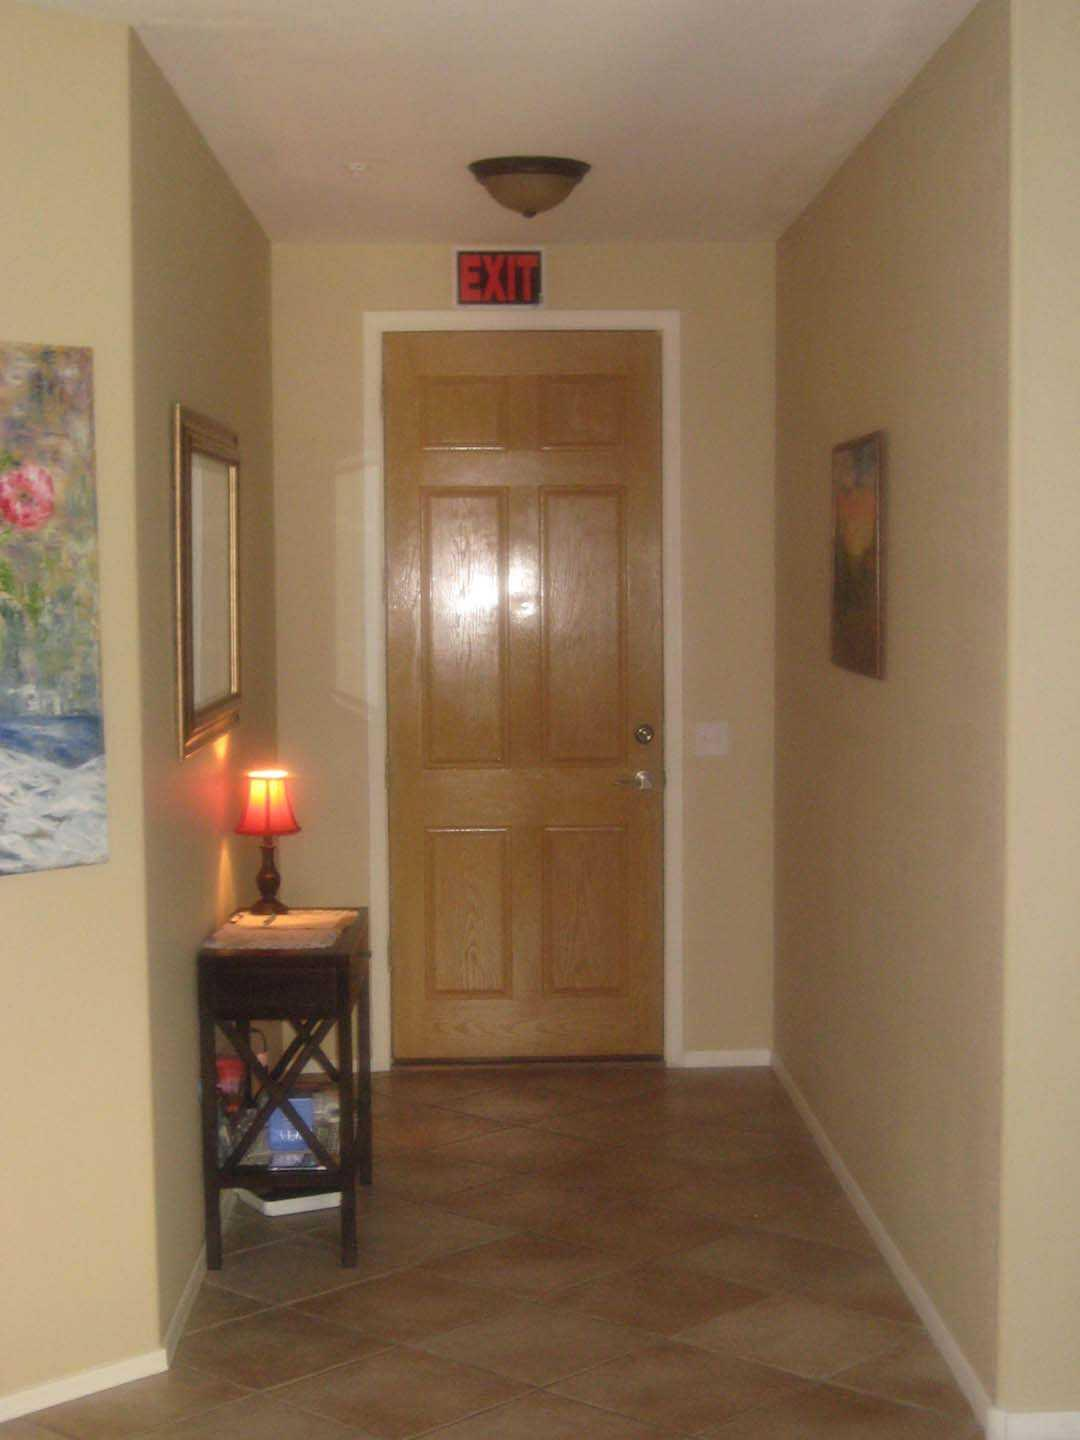 Photo of Renata's Home for the Elderly II - San Tan Valley, Assisted Living, San Tan Valley, AZ 2